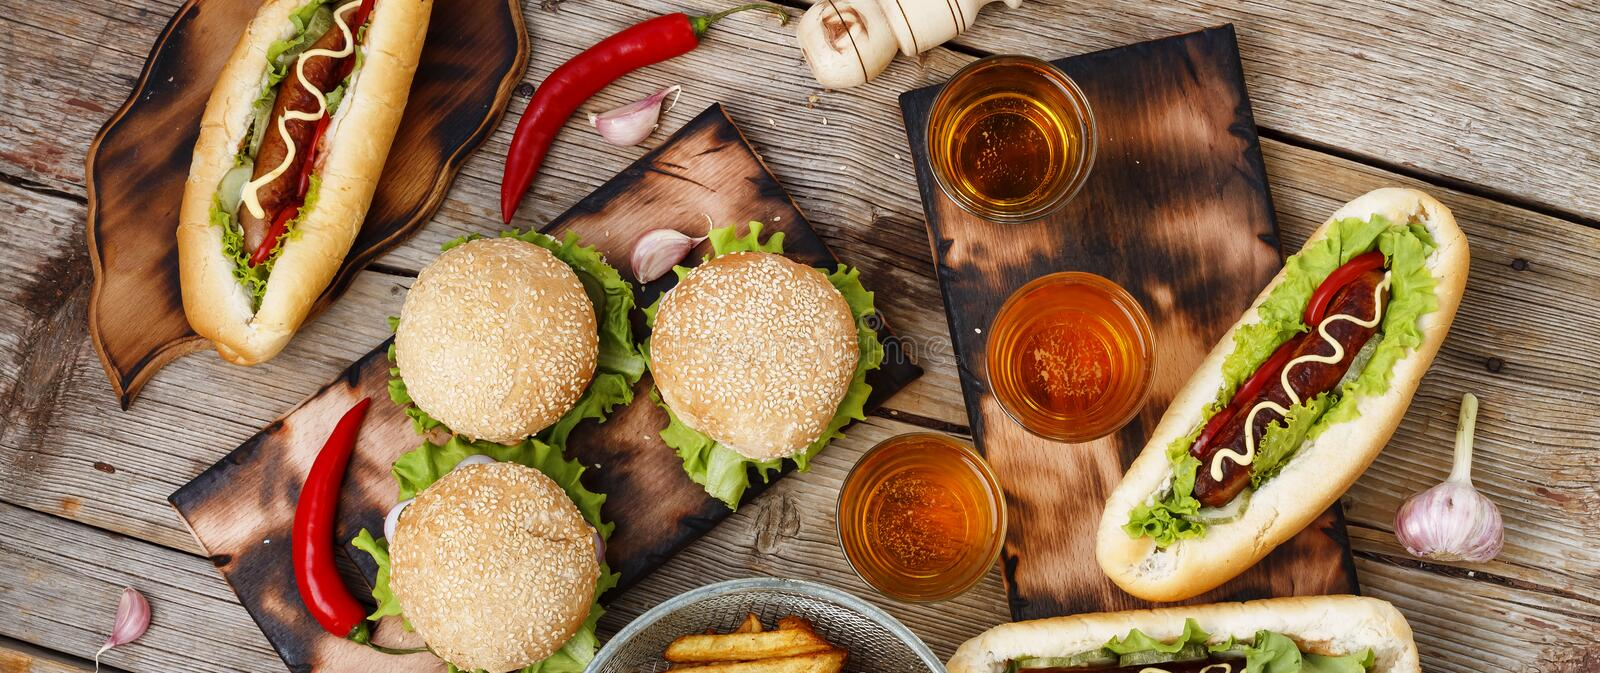 Festival of beer. Hot dogs, hamburgers, barbecue. Concept of eating outdoors. Concept of eating outdoors. Festival of beer. Hot dogs, hamburgers, barbecue stock image